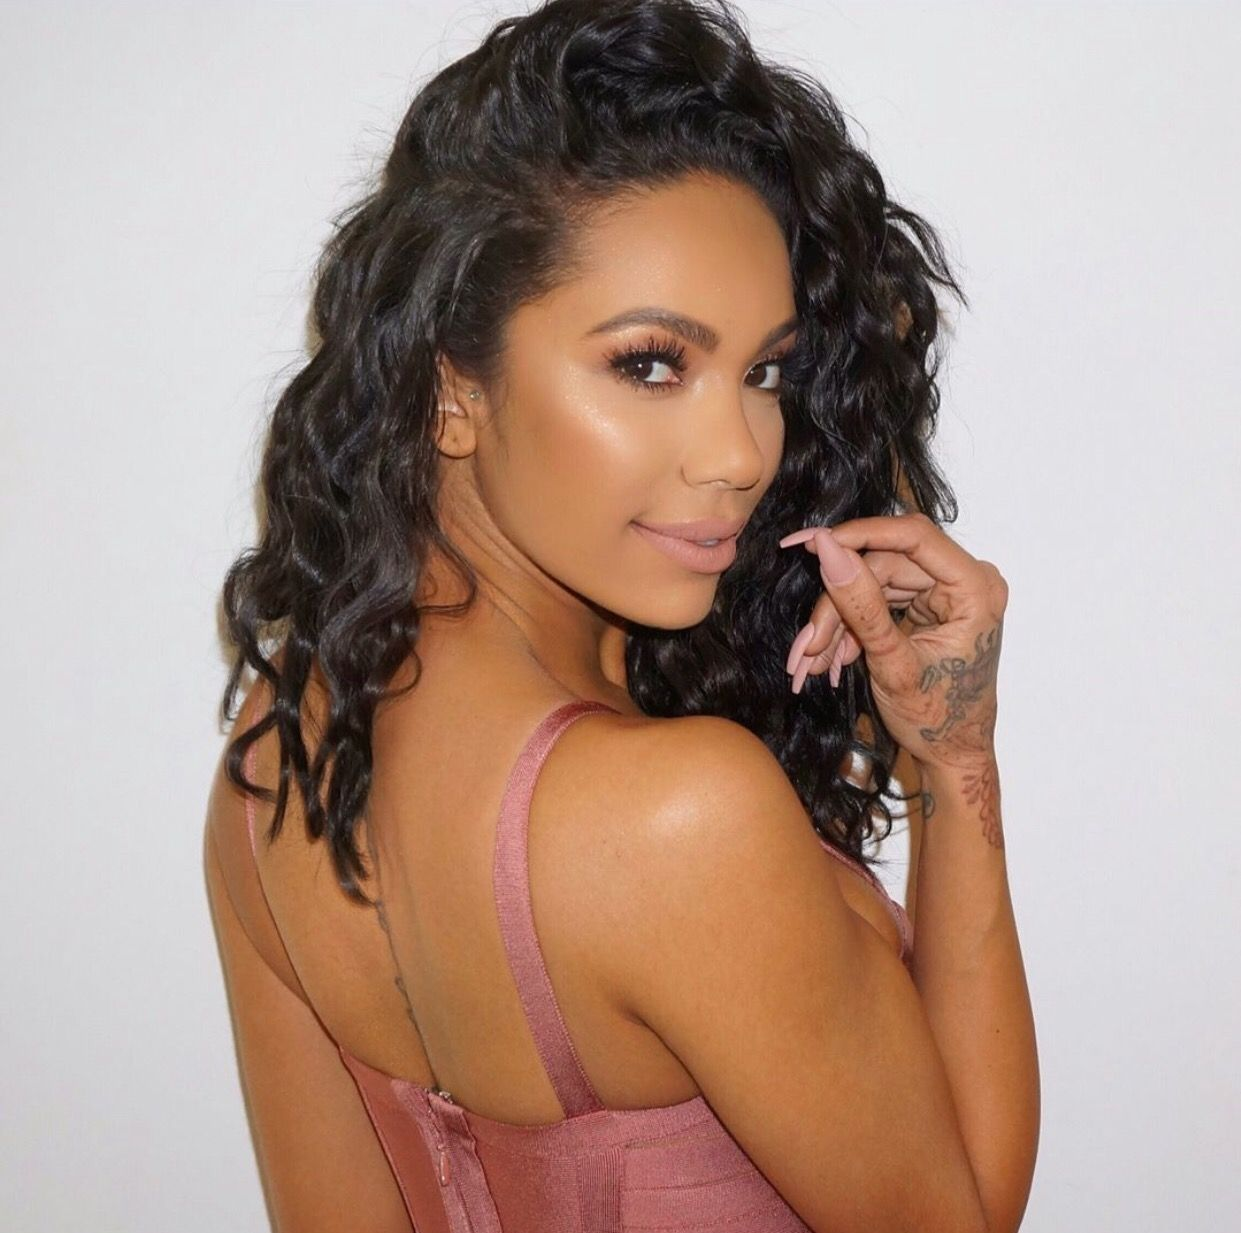 """""""erica-mena-poses-together-with-her-daughter-blasting-a-hater-for-accusing-her-of-something-terrible"""""""